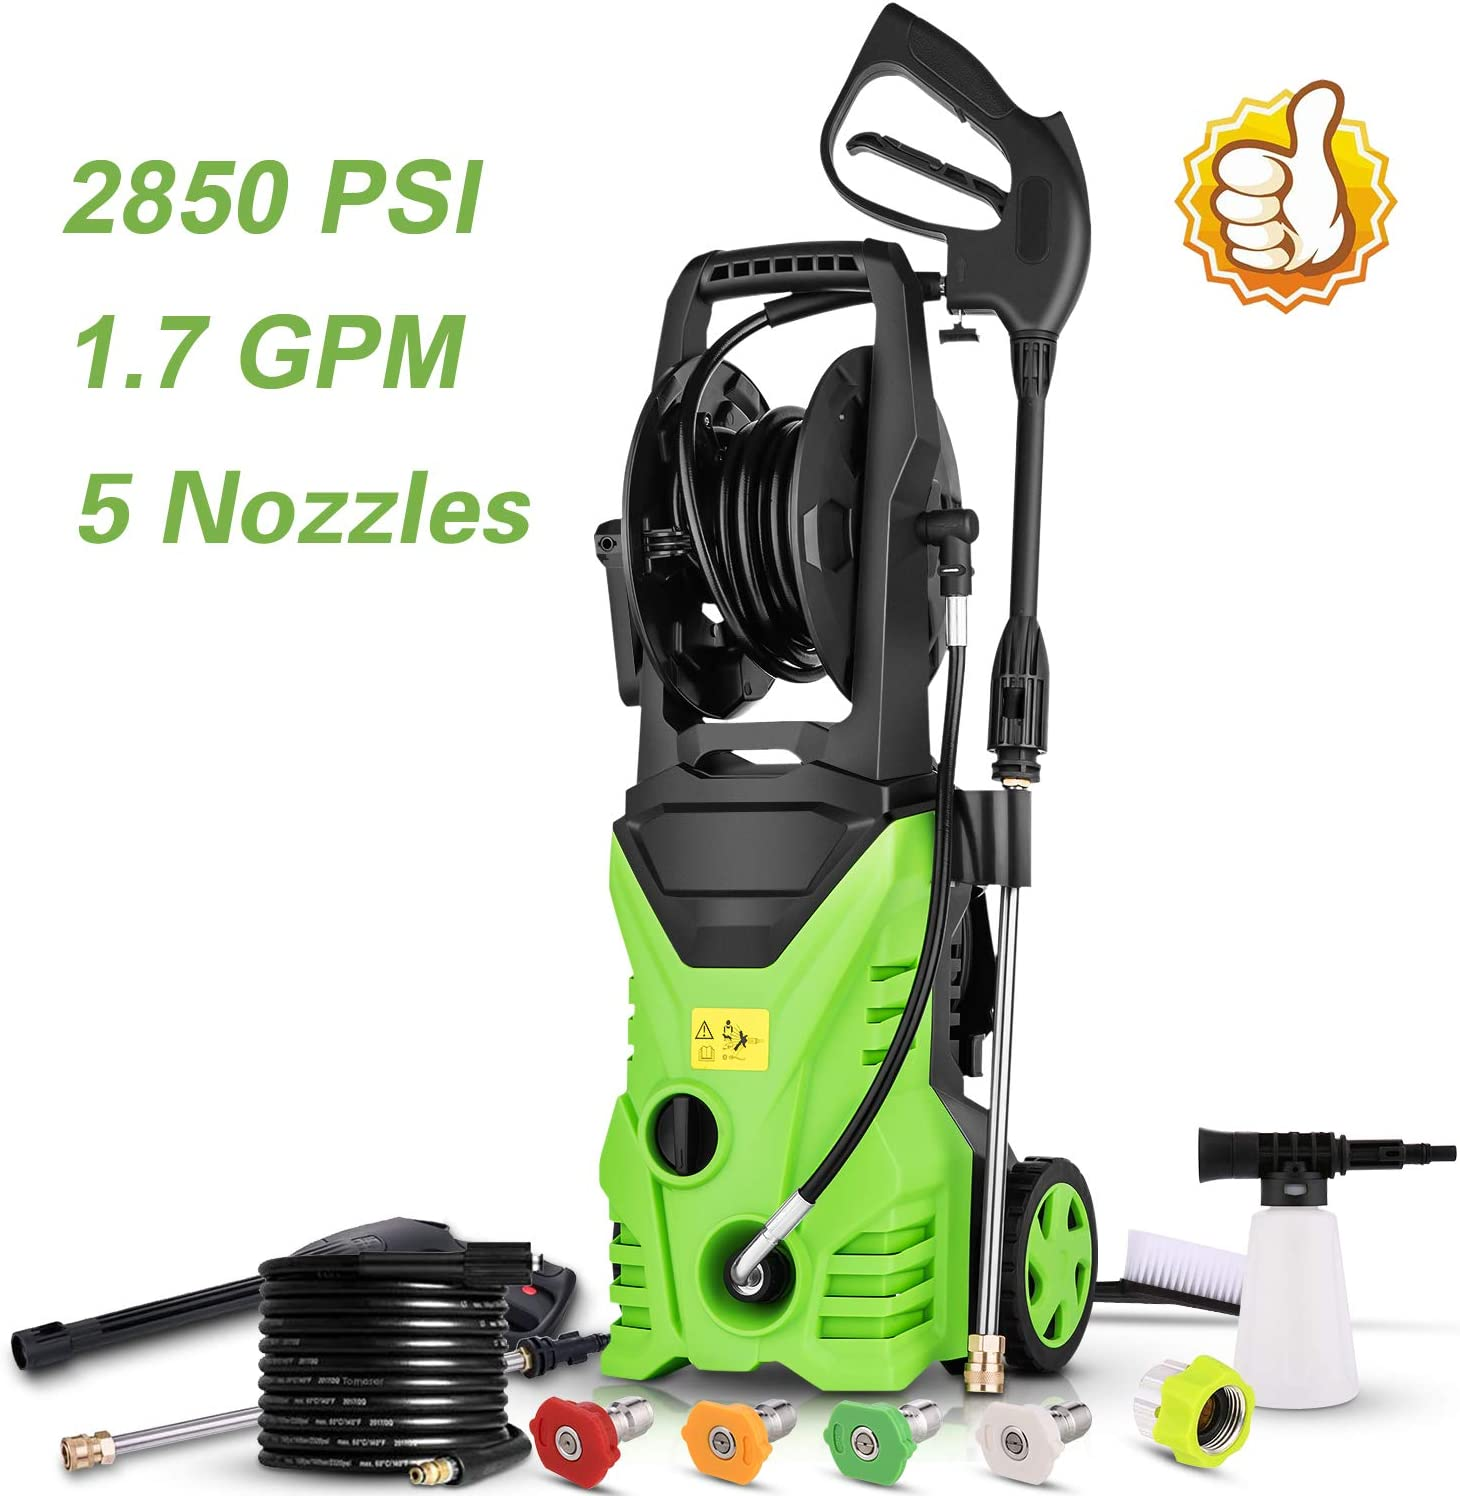 Homdox Electric Pressure Power Washer 2850PSI 1.7GPM High Pressure Power Washer 1800W Machine Cleaner with Hose Reel, 5 Nozzles